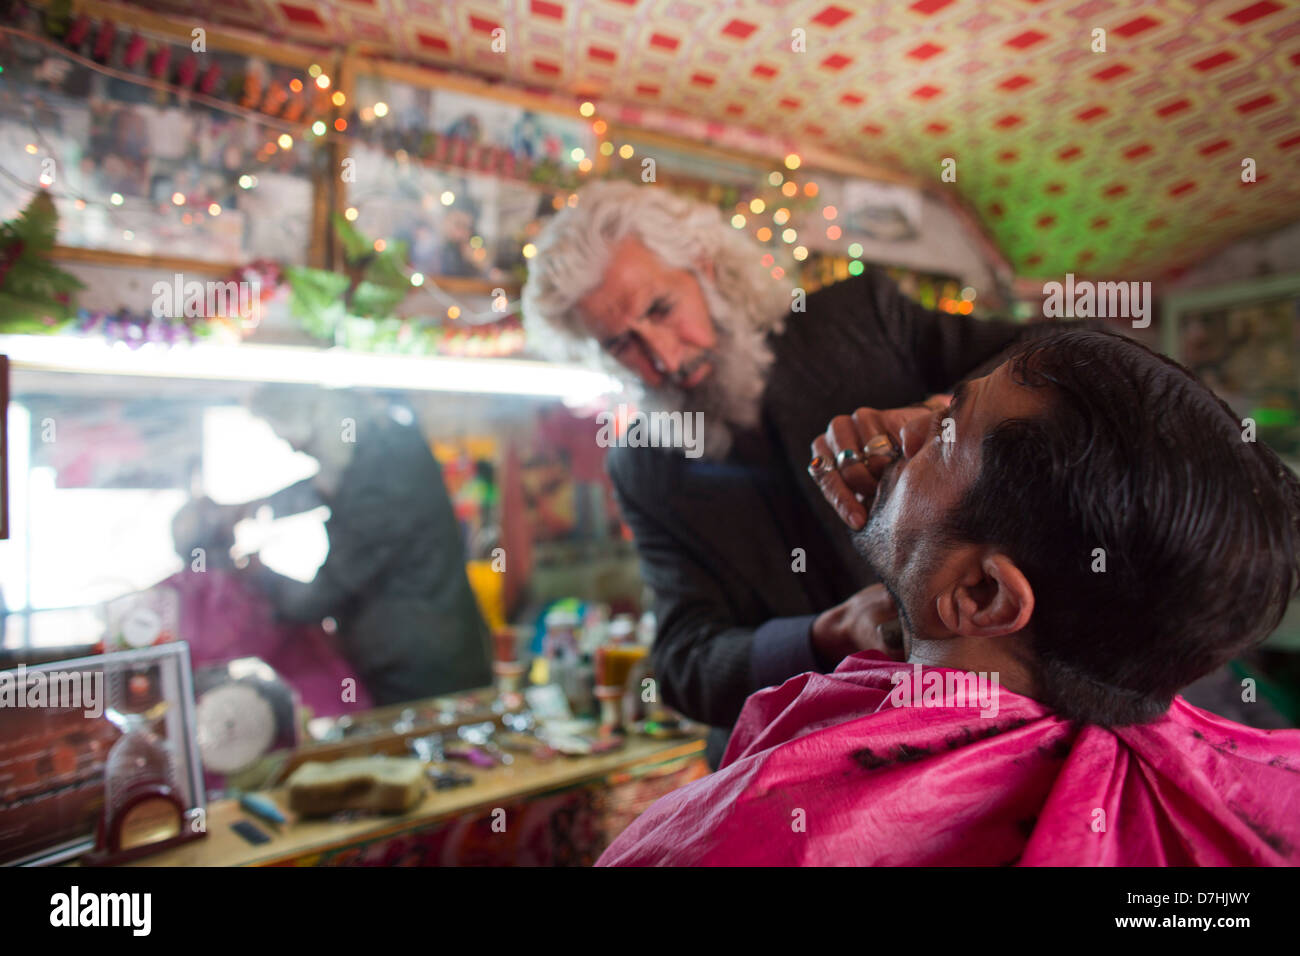 hair dresser at work in kabul, Afghanistan - Stock Image